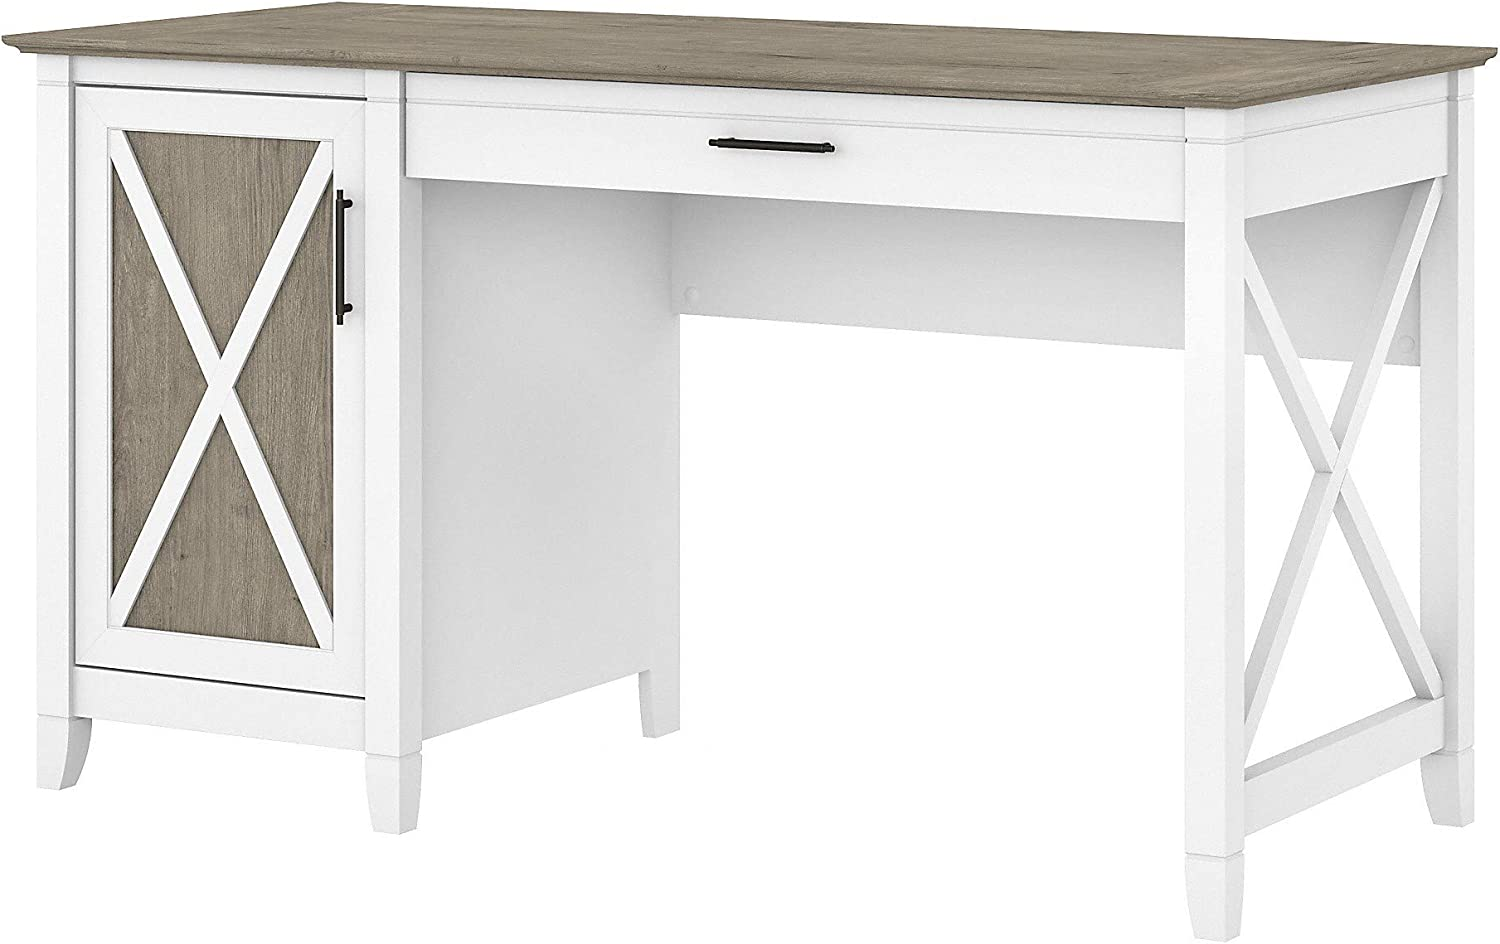 Bush Furniture Key West 54W Computer Desk with Keyboard Tray and Storage, Pure White and Shiplap Gray